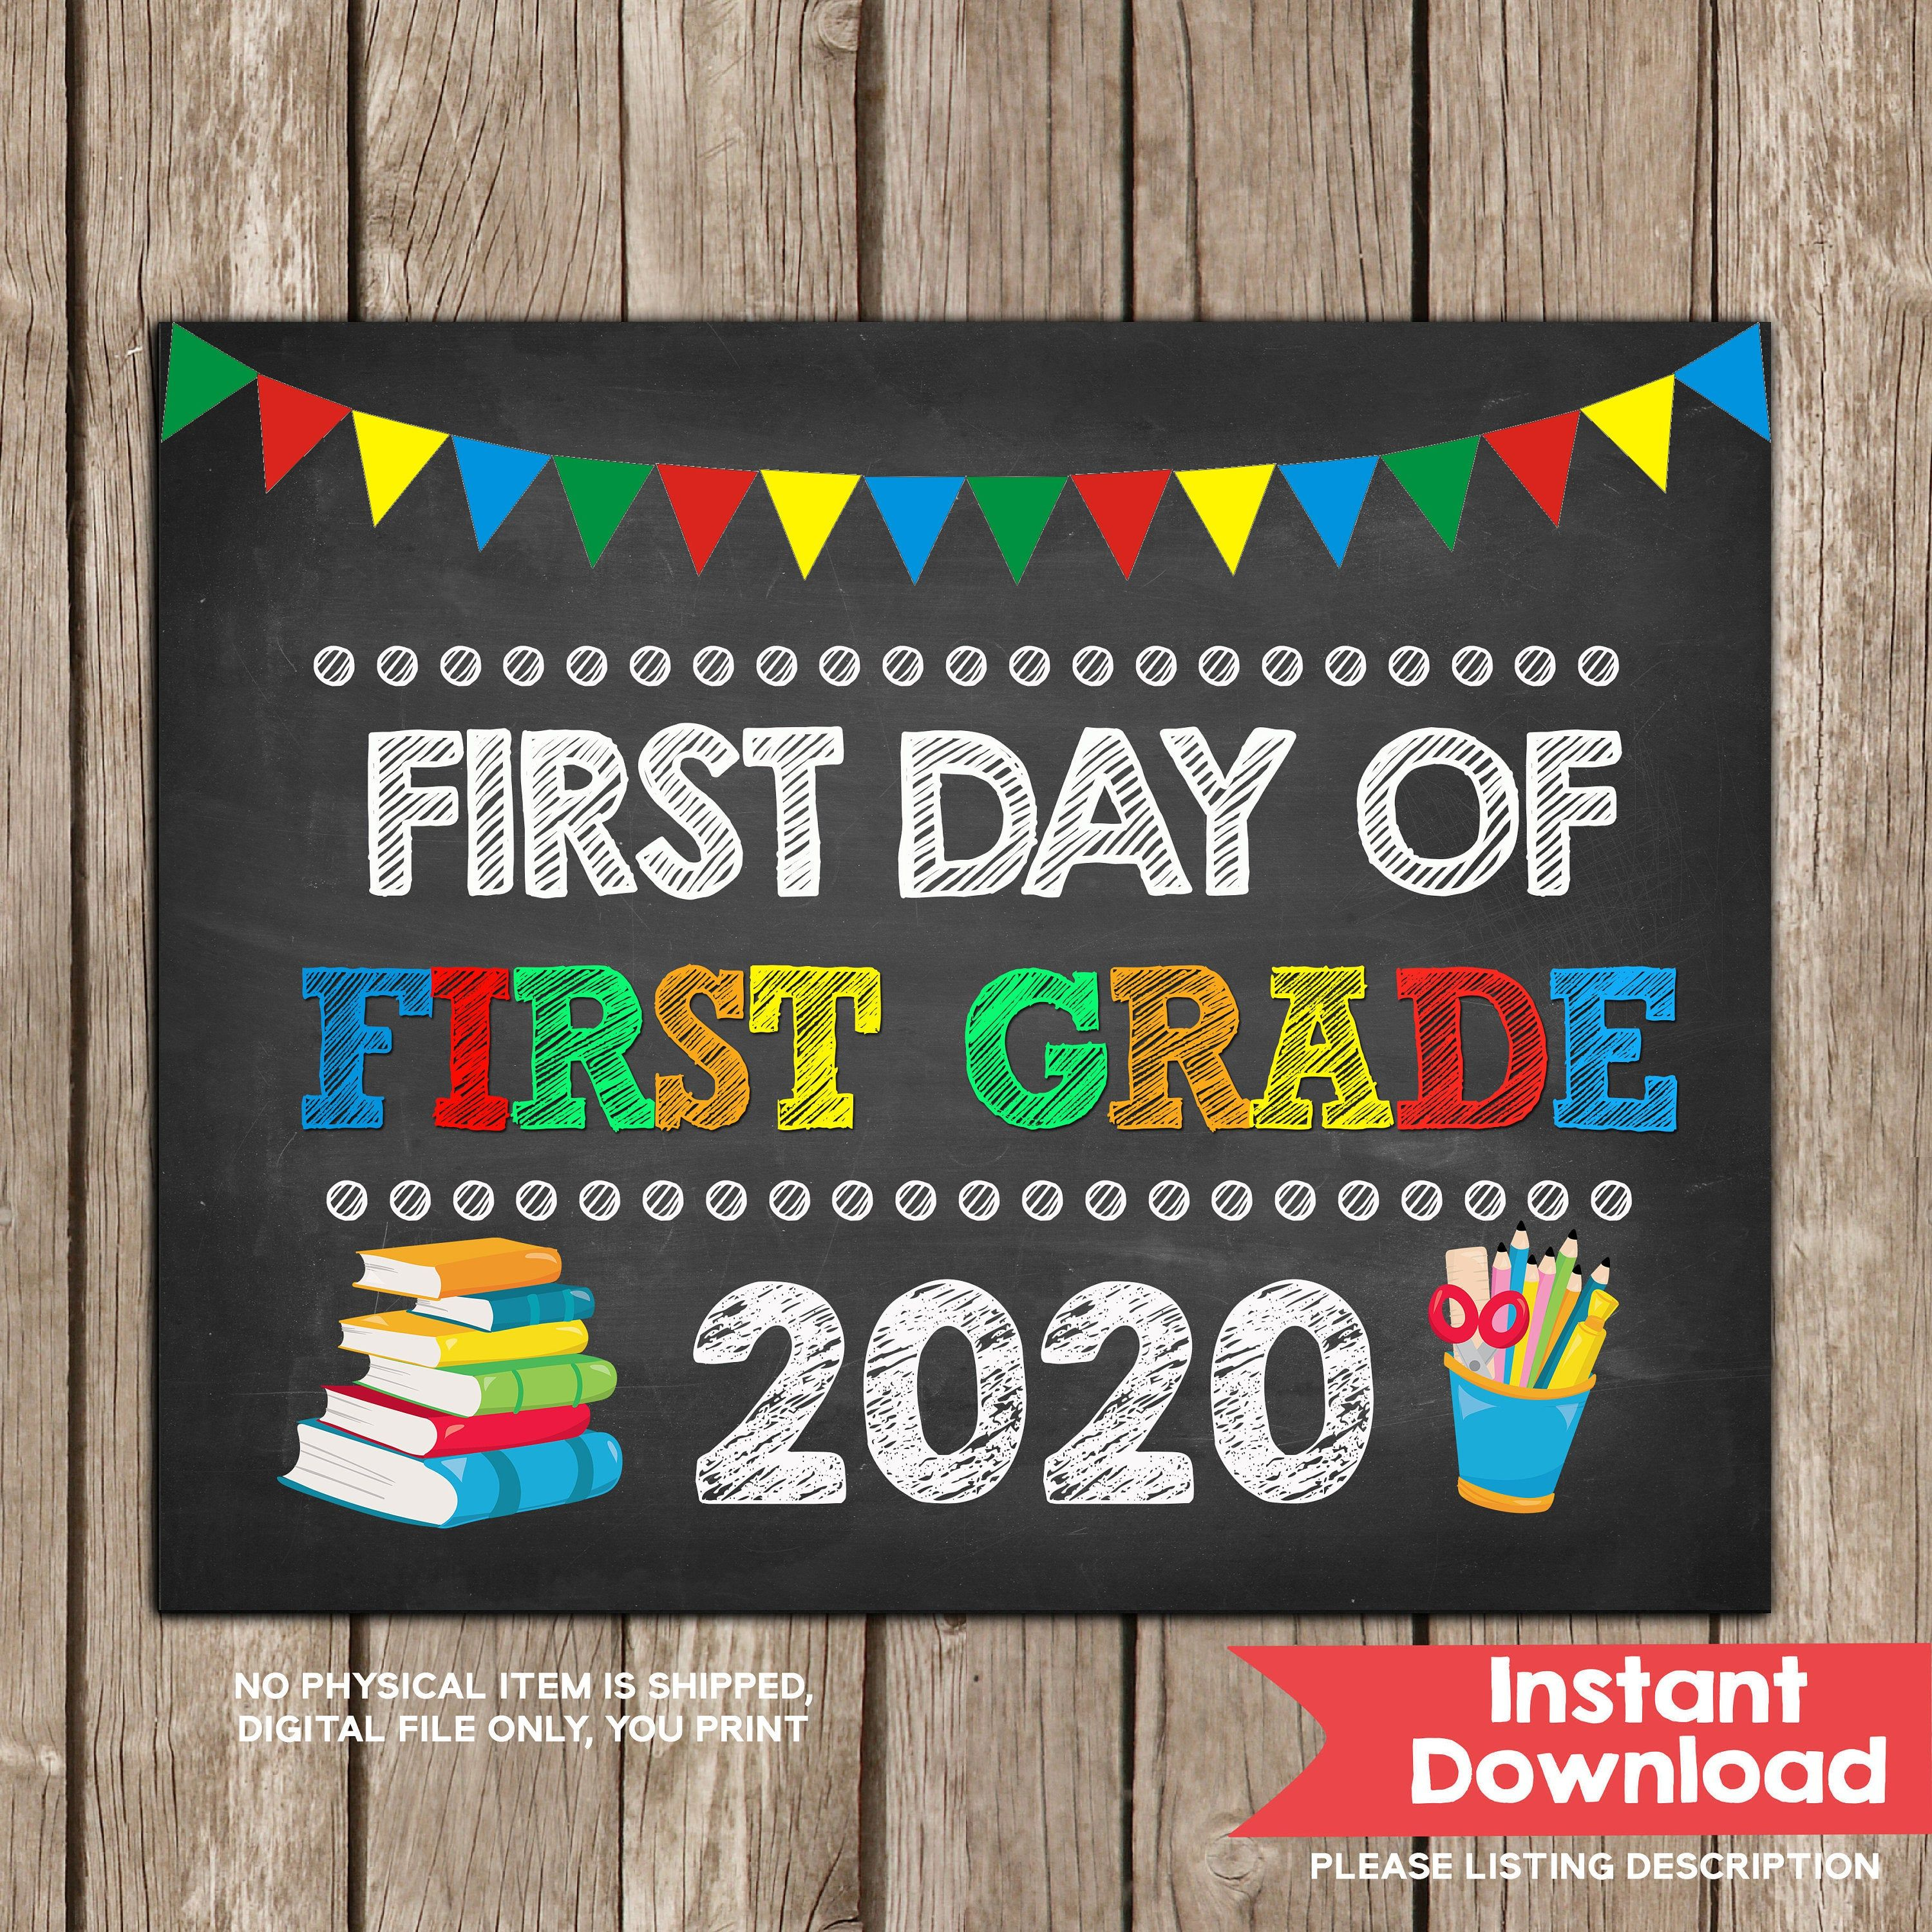 Third Grade Physical Therapy First Grade Graduation Sign Pre-School Instant Download Kindergarten Second Grade Moving Up